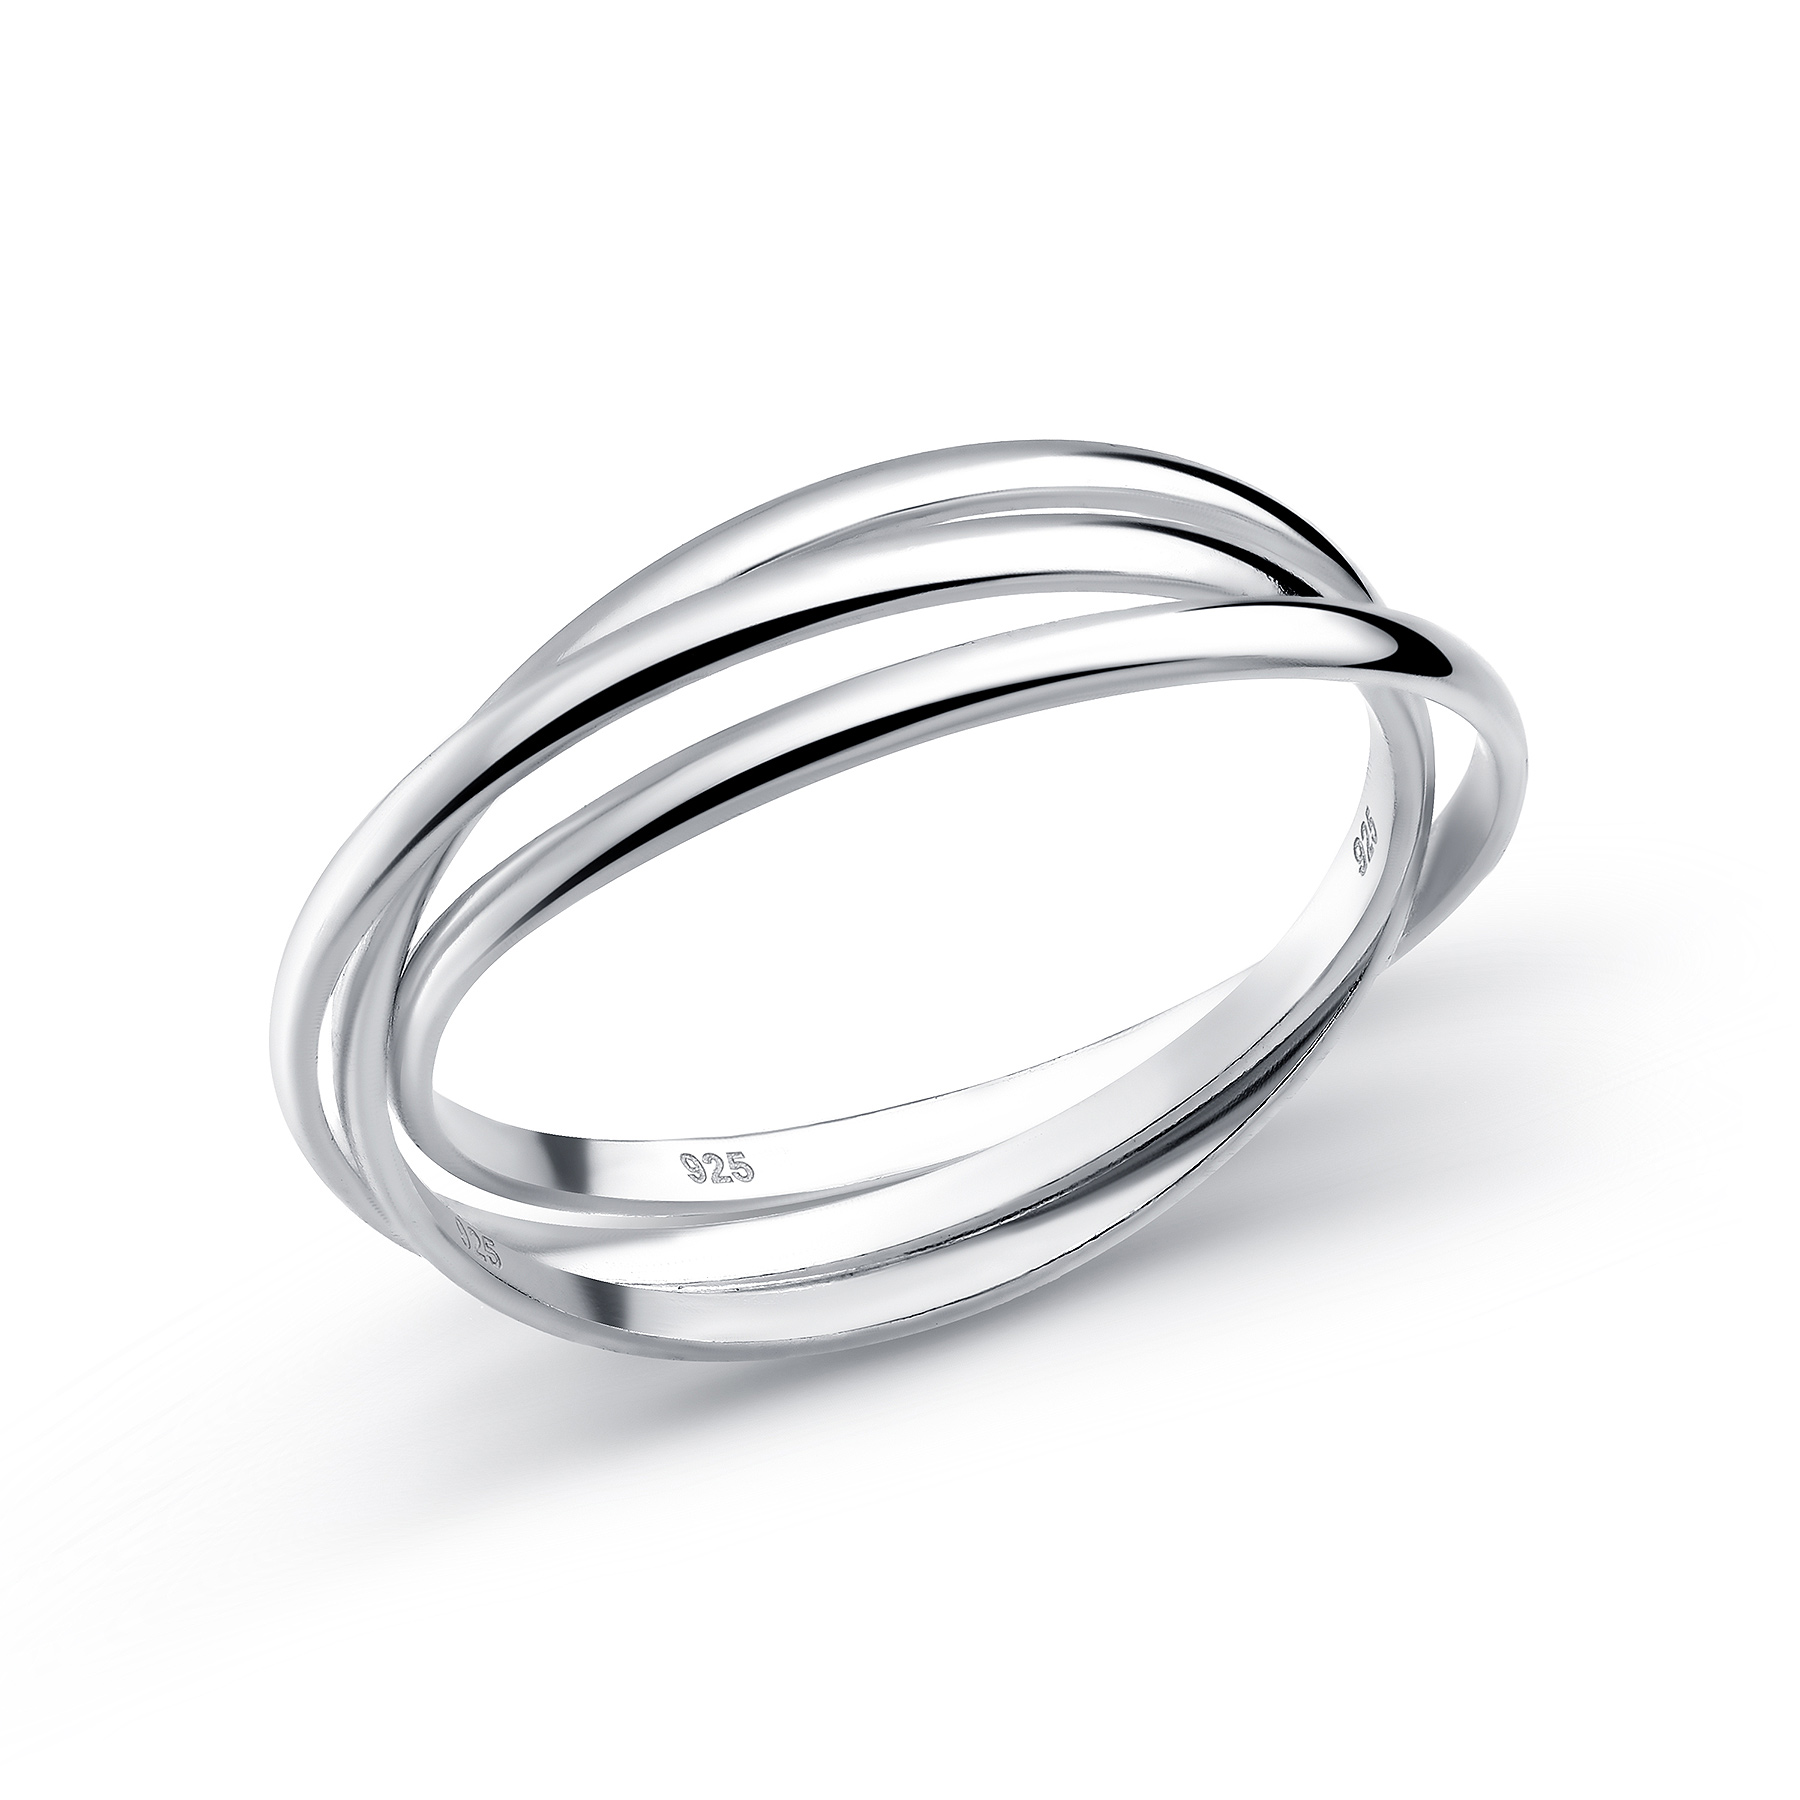 706-15080 - 925 Sterling Silver Triple Band Ring, AKA Russian Wedding ring